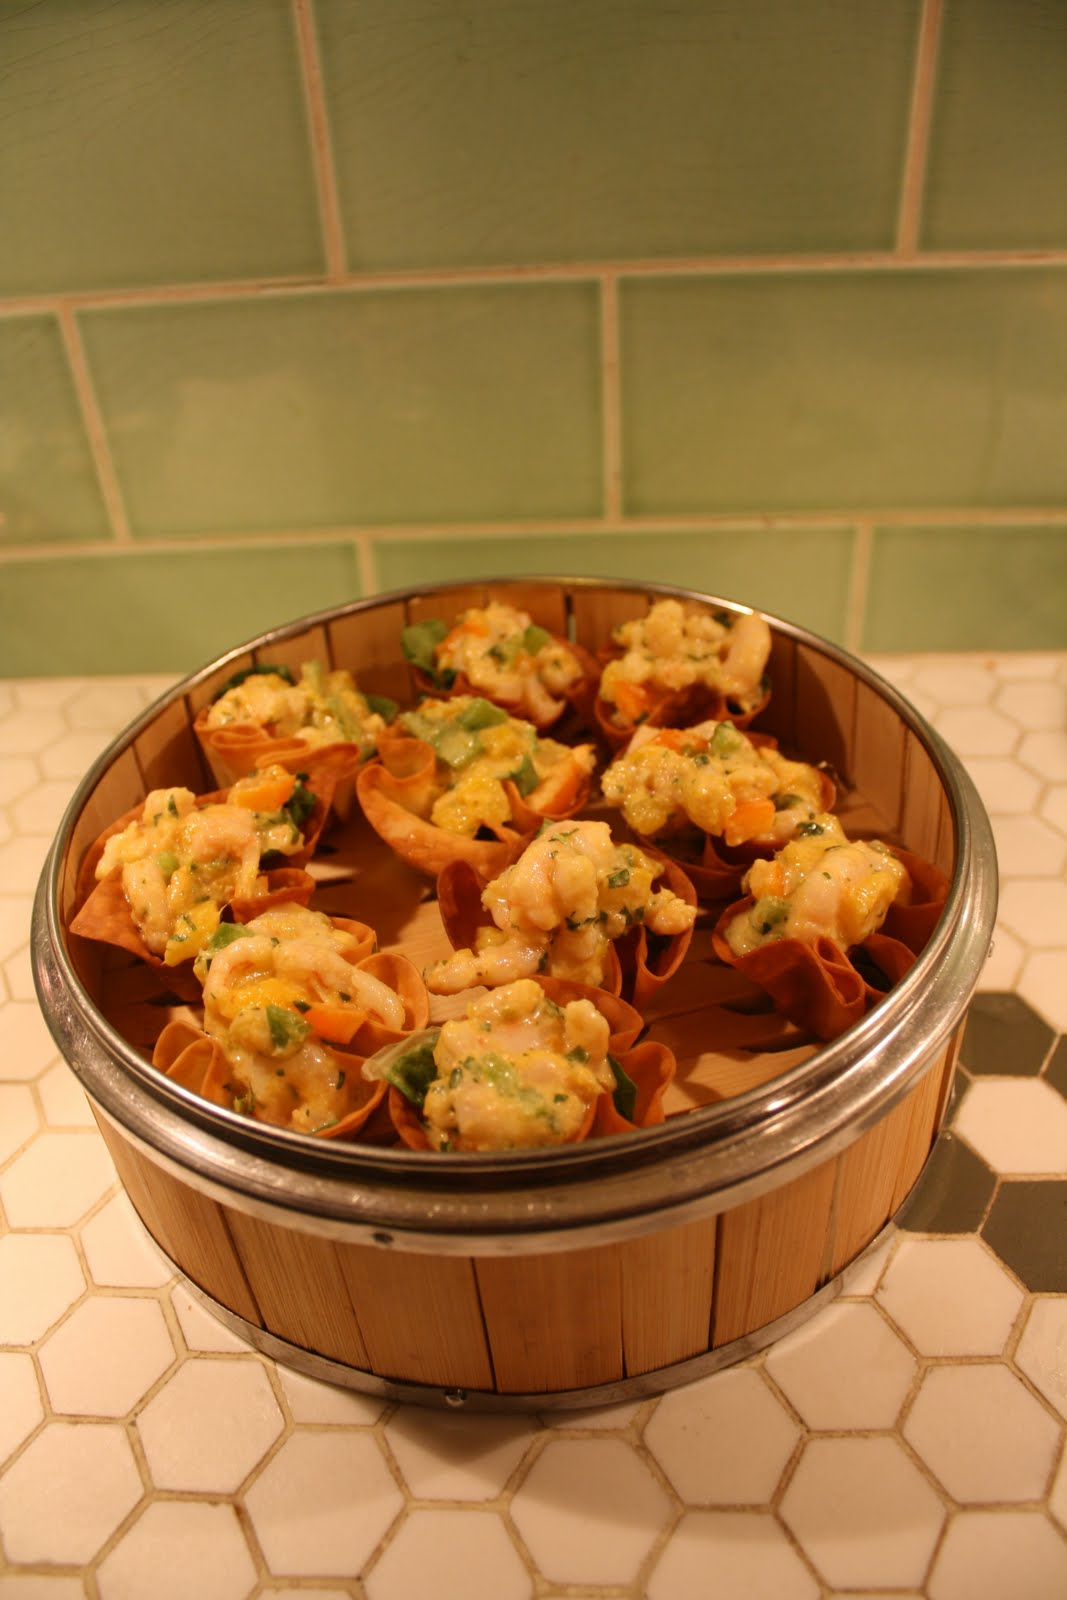 Turquoise Tile Kitchen: Wonton Crisps with Green Curry ...